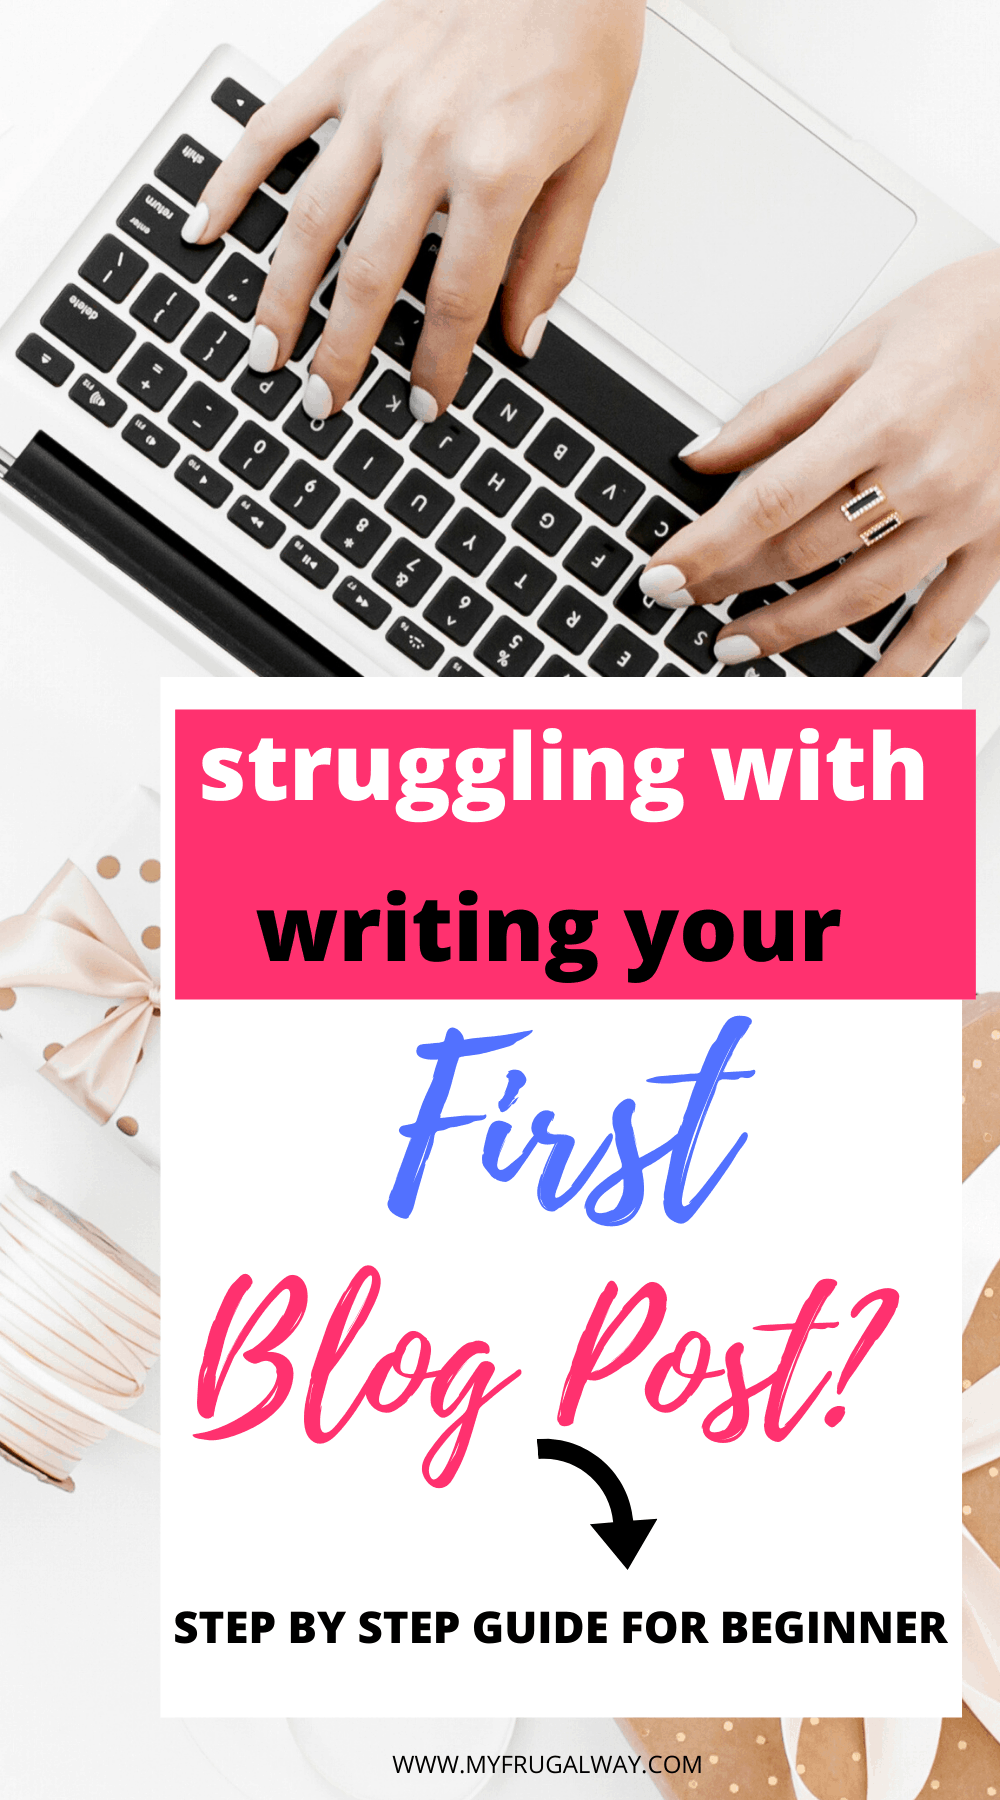 Beginner blogging tips using wordpress. Best step by step tutorial to help you write your first blog post in WordPress. All you need to know how to write and publish your very first blog post.